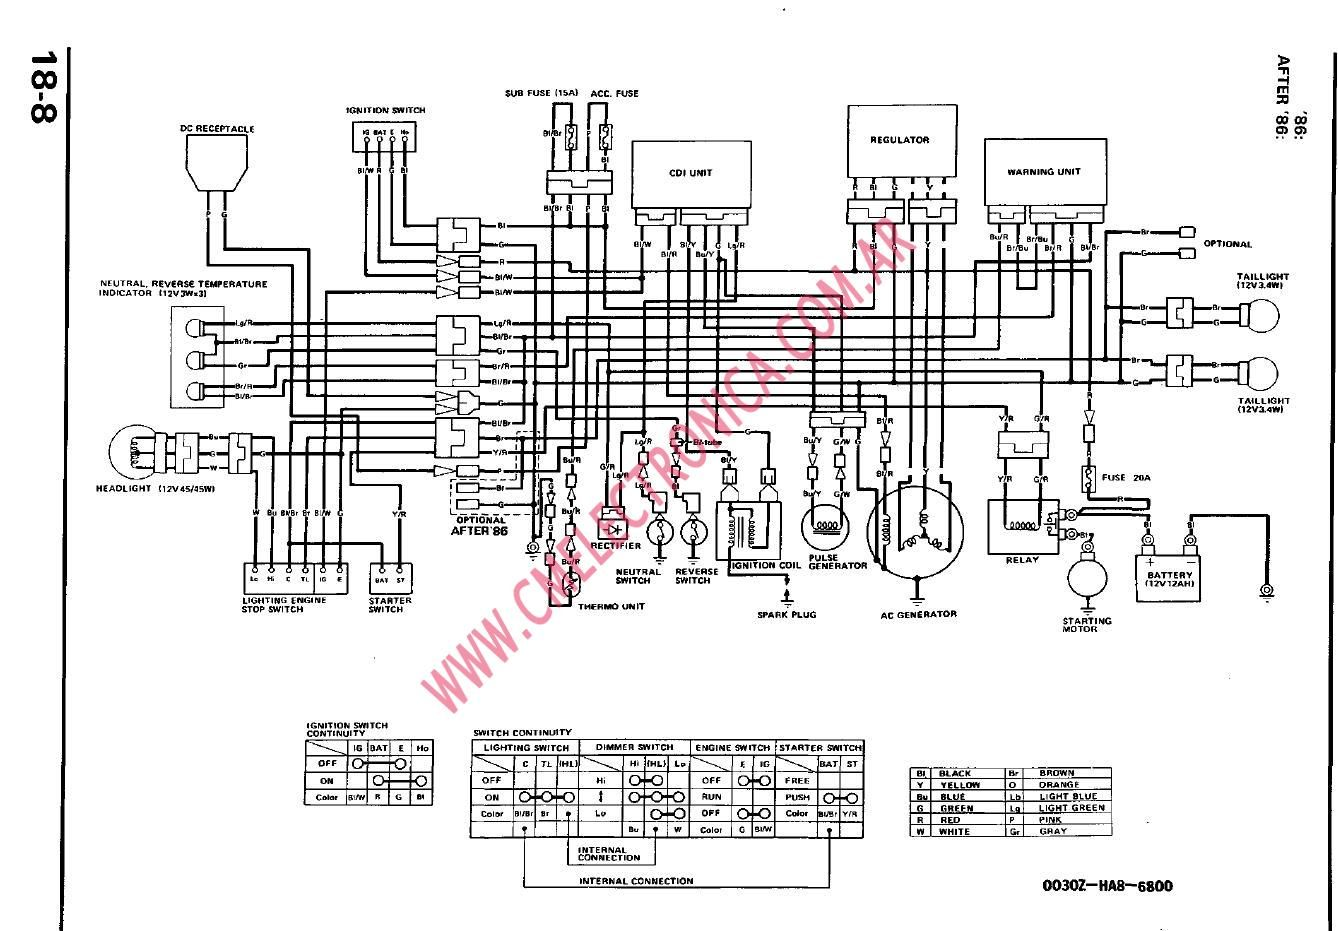 Wiring Diagram For Honda Xr400r | Wiring Schematic Diagram on